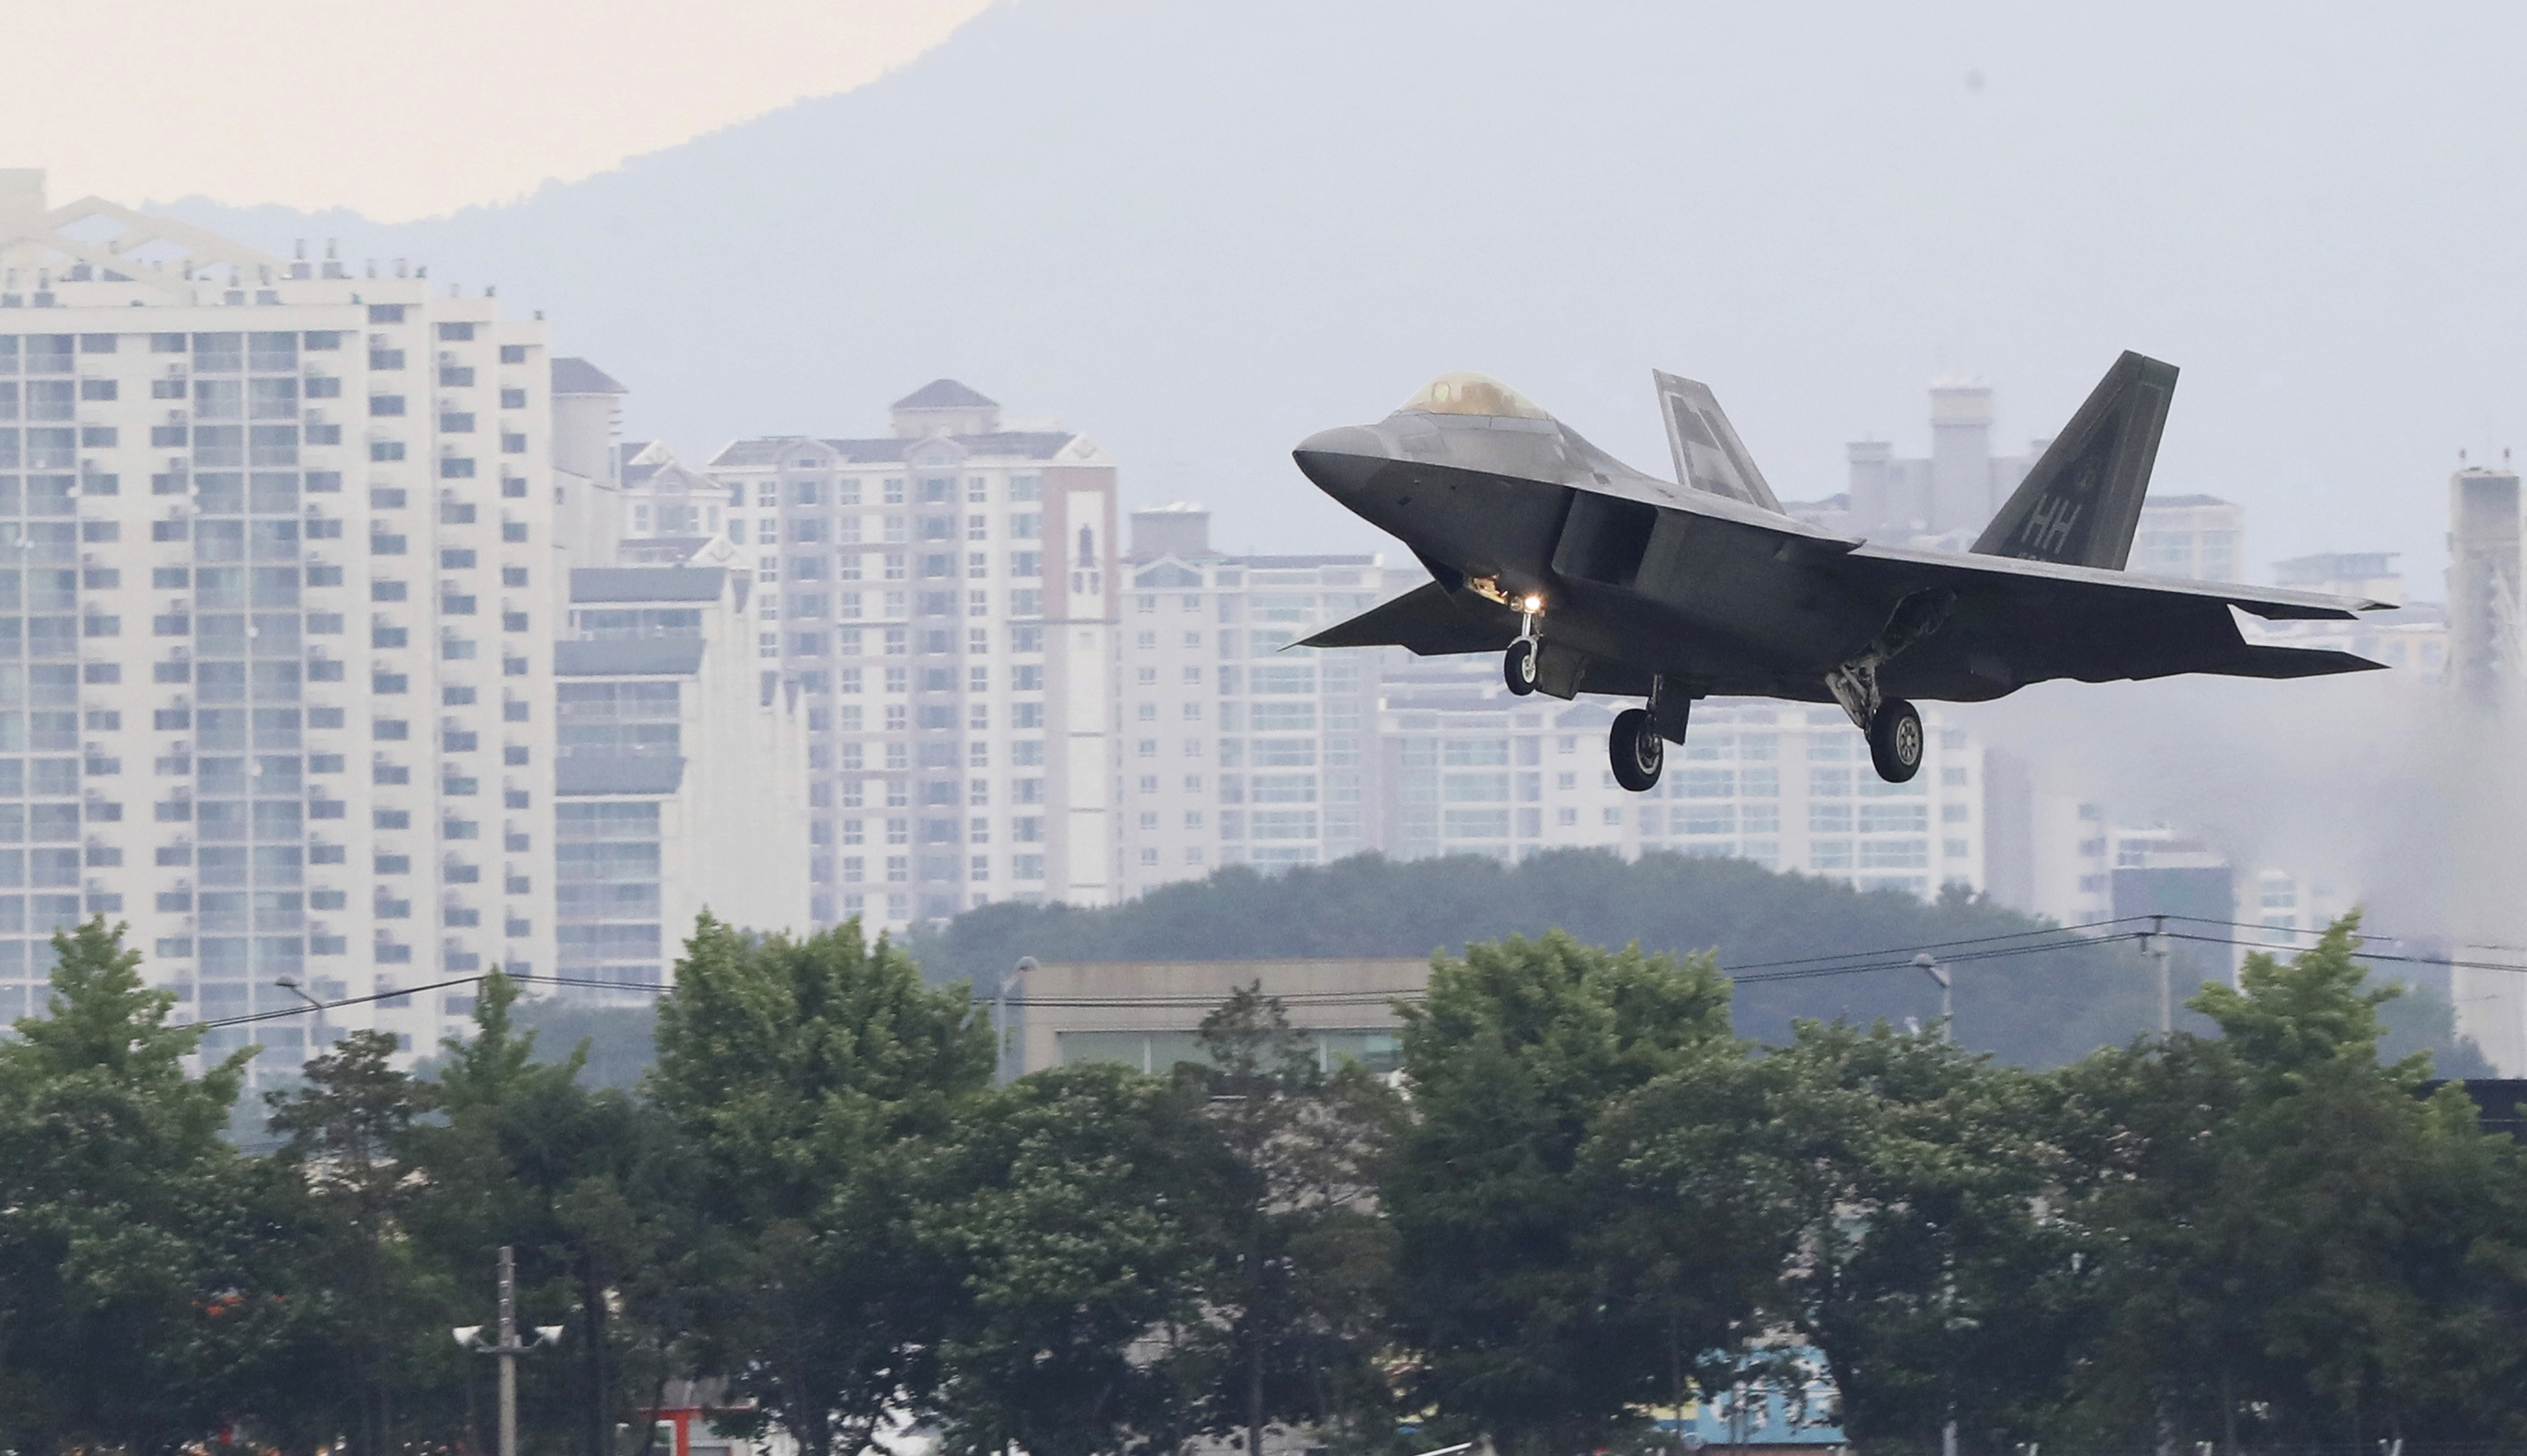 A U.S. F-22 Raptor stealth fighter jet lands as South Korea and the United States conduct the Max Thunder joint military exercise at an air base in Gwangju South Korea